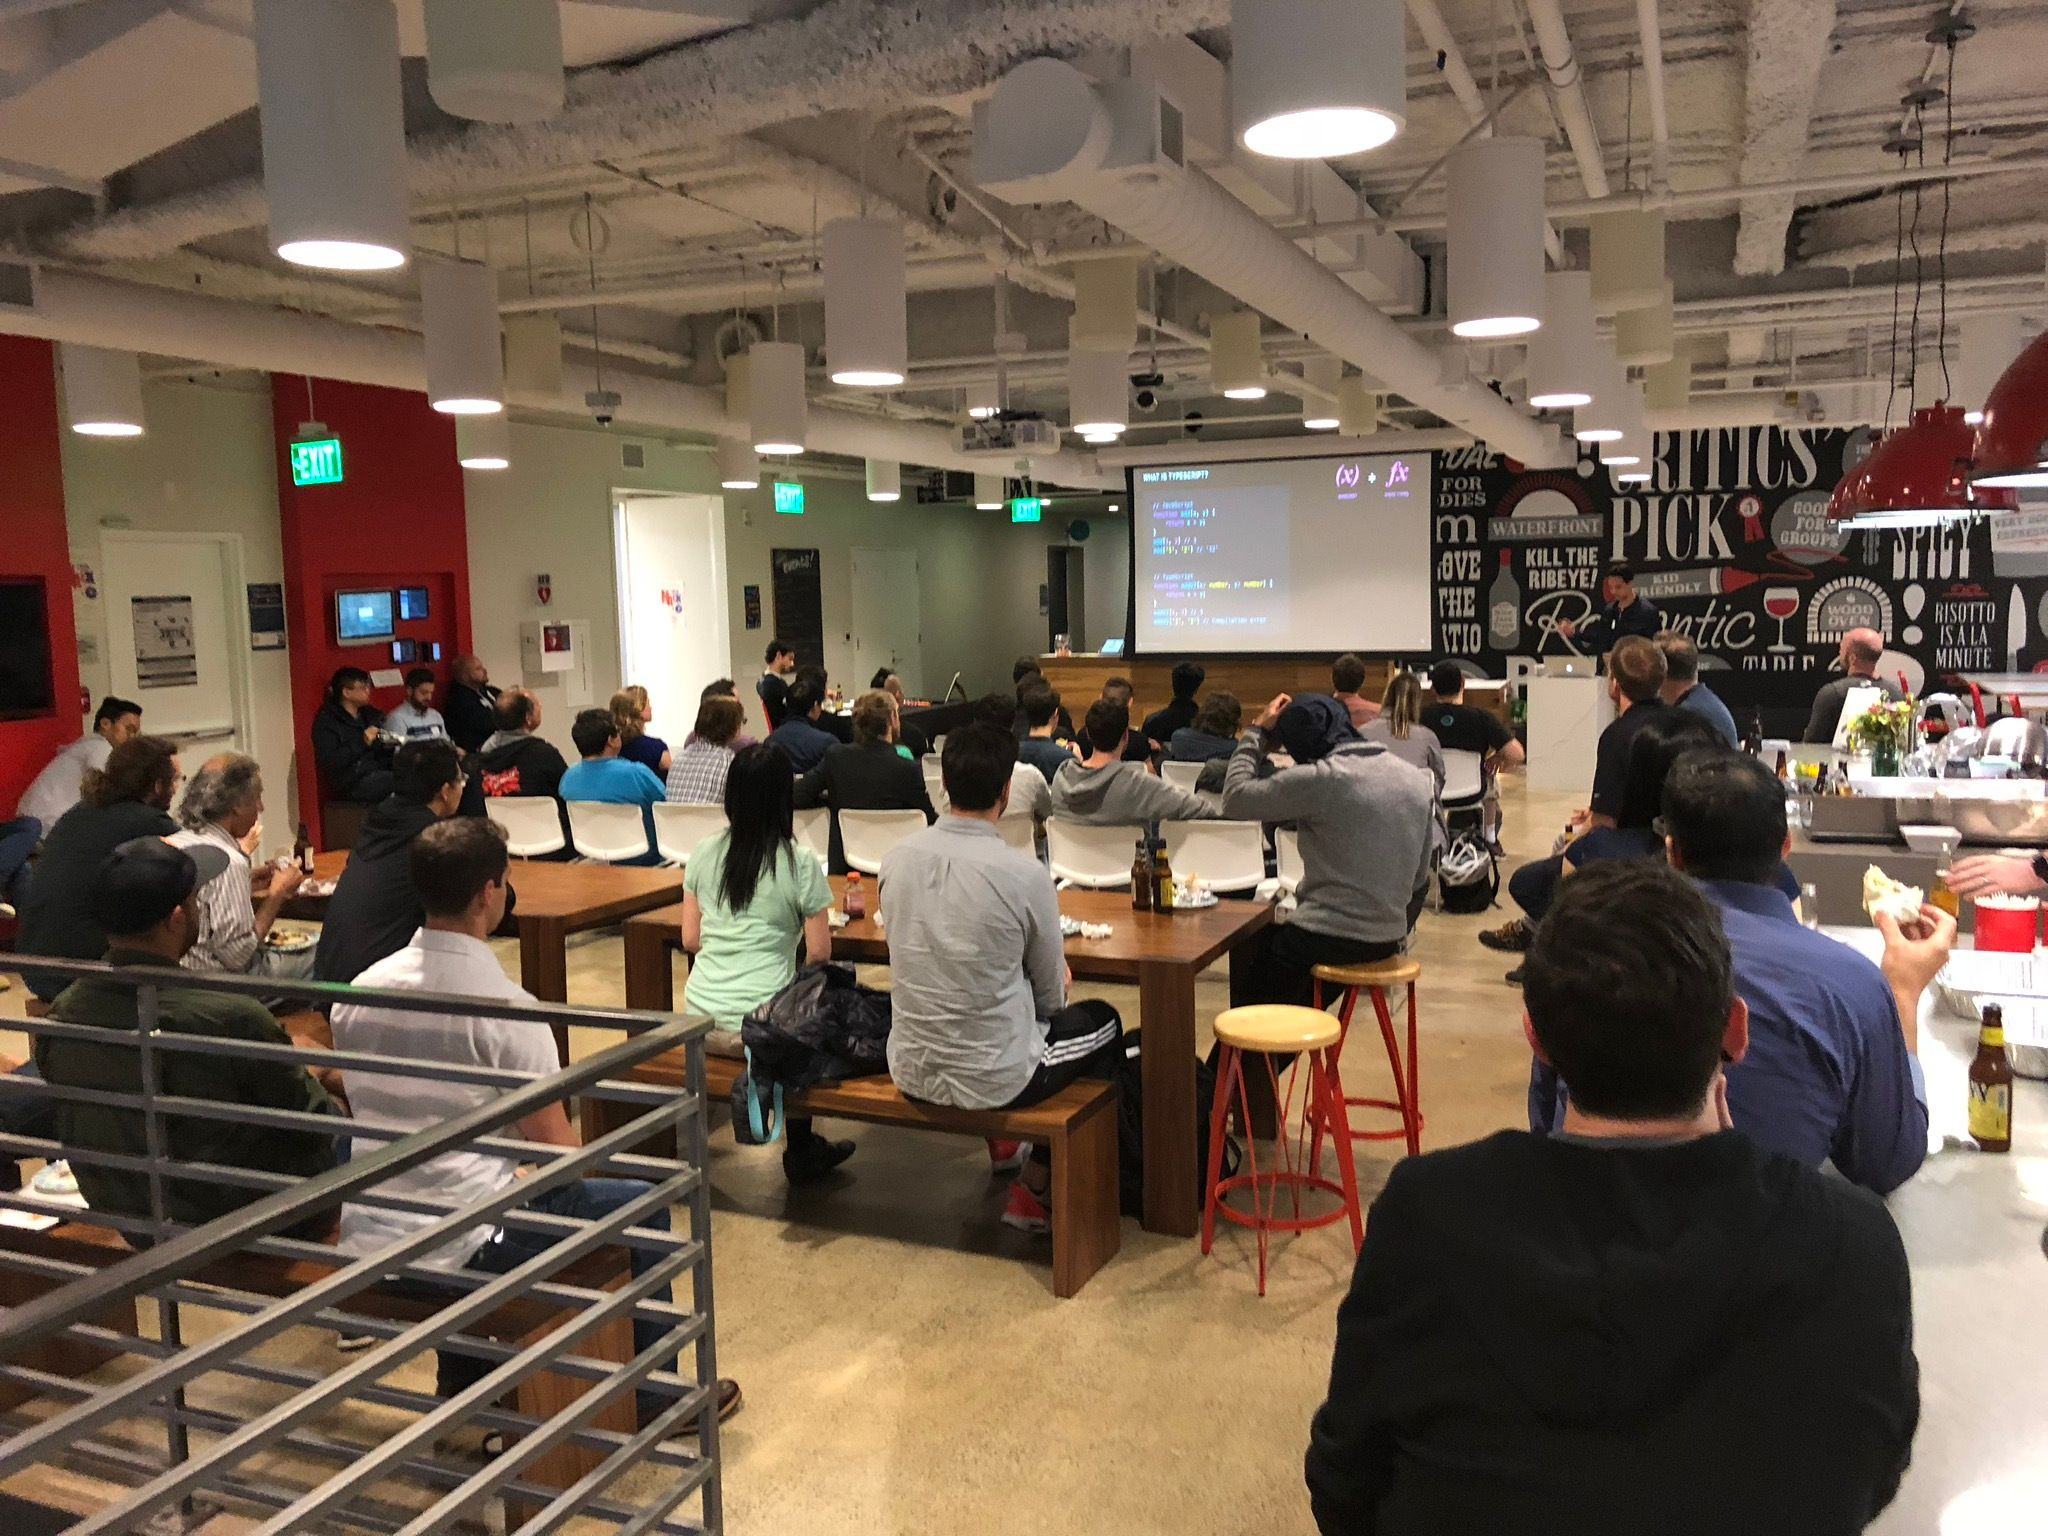 San Francisco TypeScript Meetup